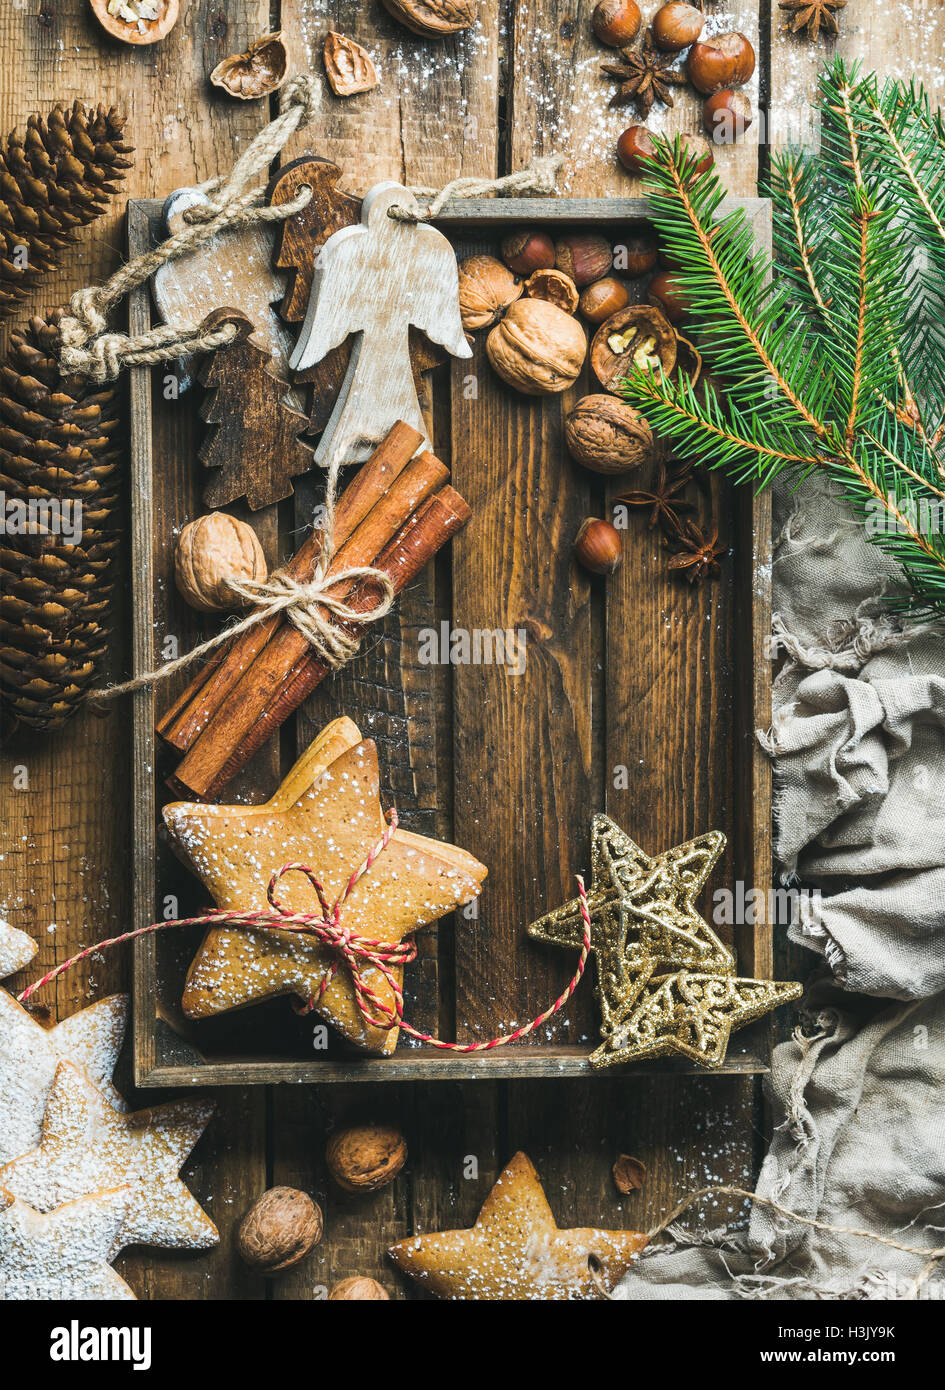 Wooden tray with cookies, decorative angels and stars, spices, nuts - Stock Image